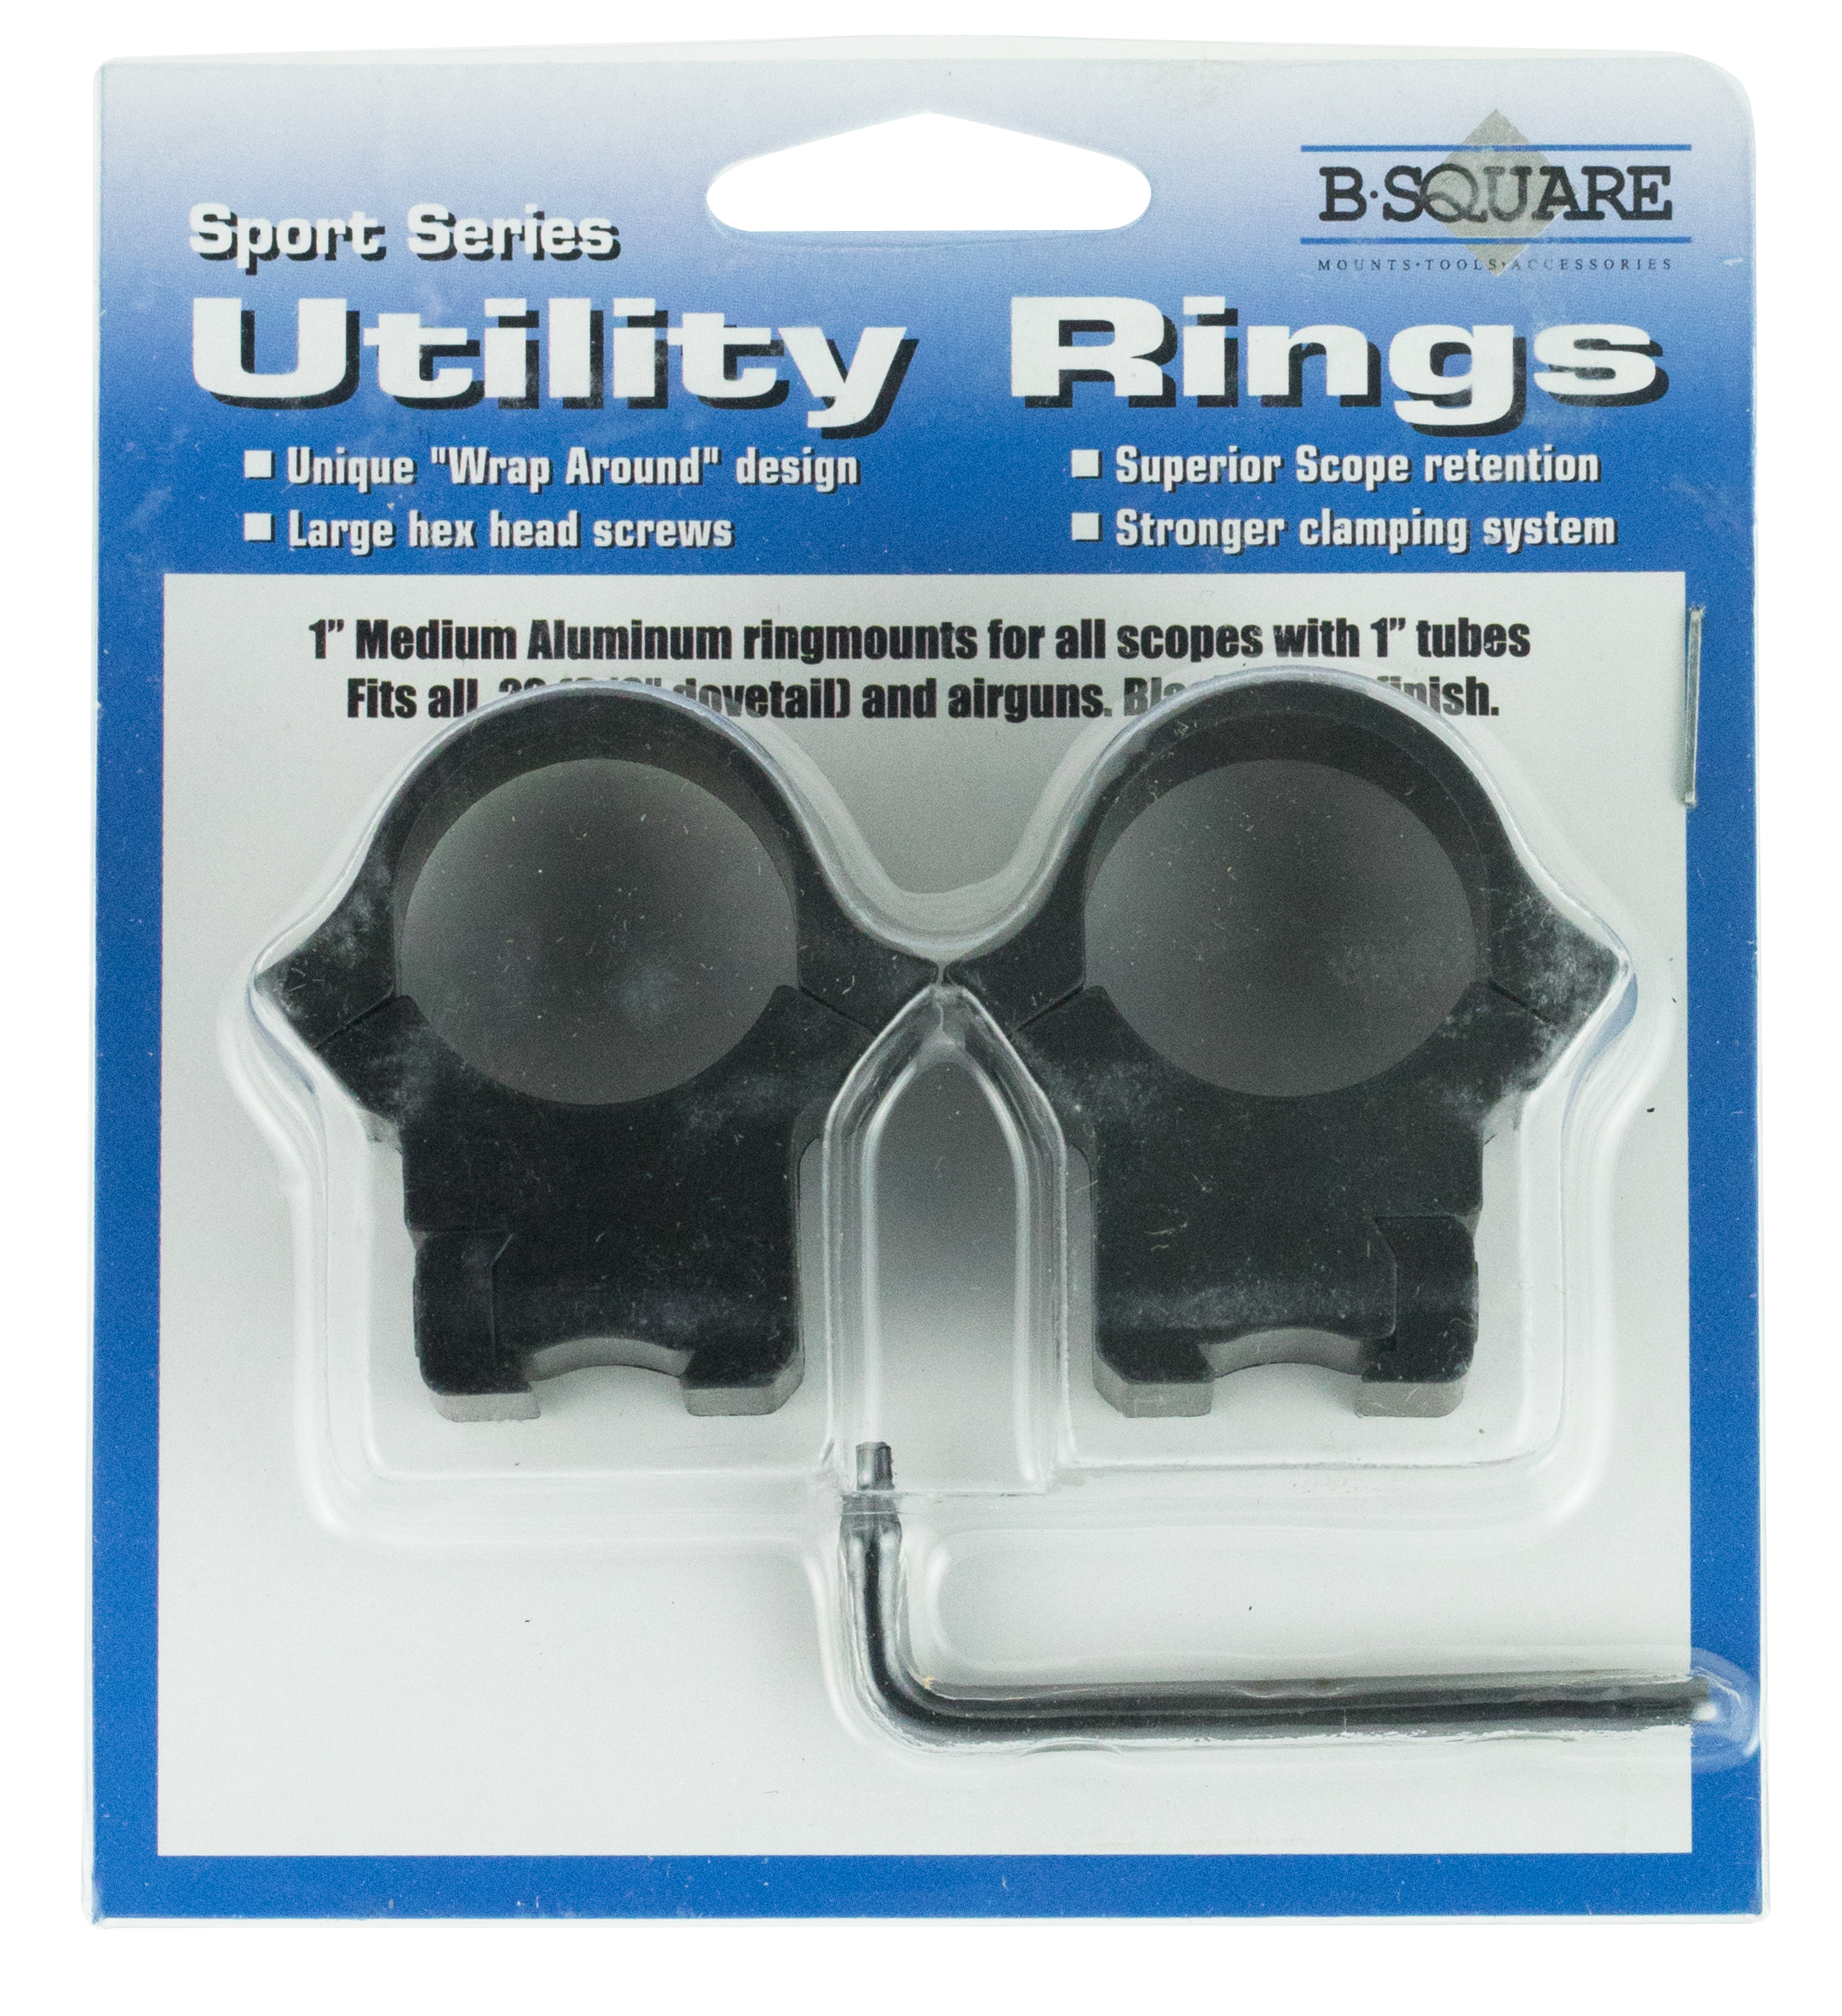 B-Square 27054 Sport Utility Ring Set 1